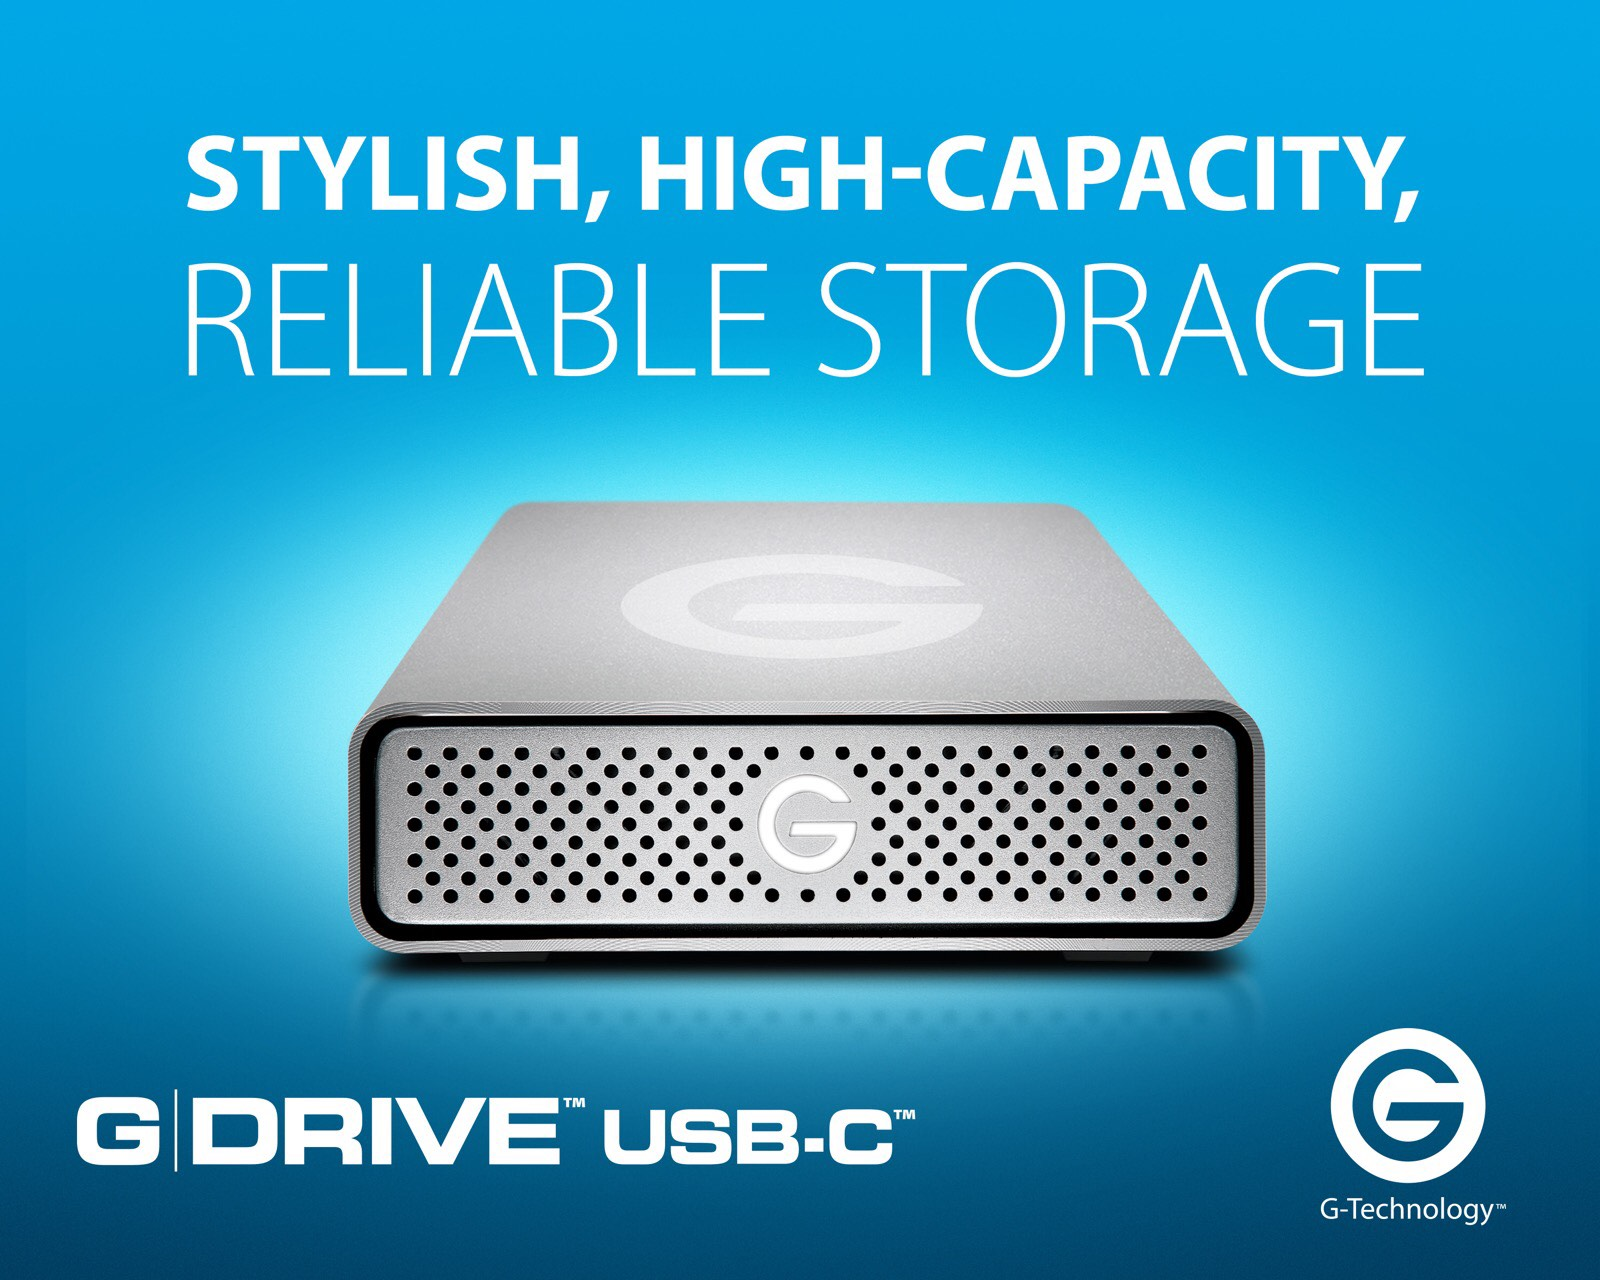 WD's G-Drive USB-C adds storage and power to your laptop